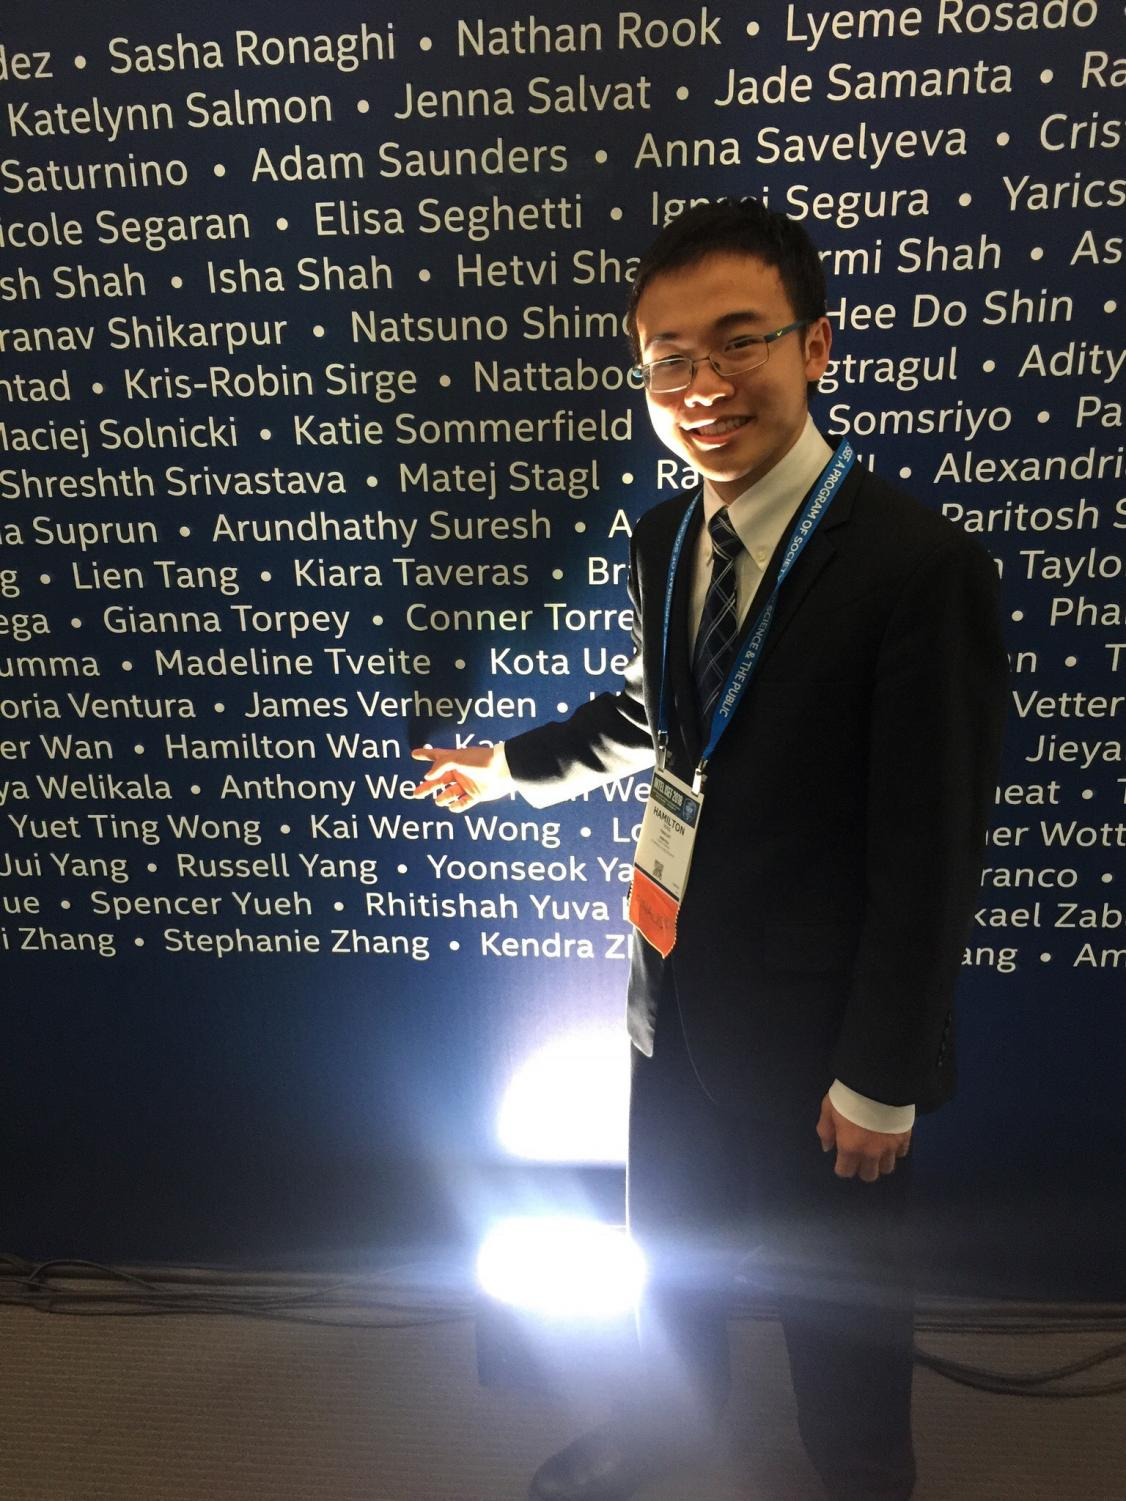 Hamilton Wan points to his name at the International Science and Engineering Fair.